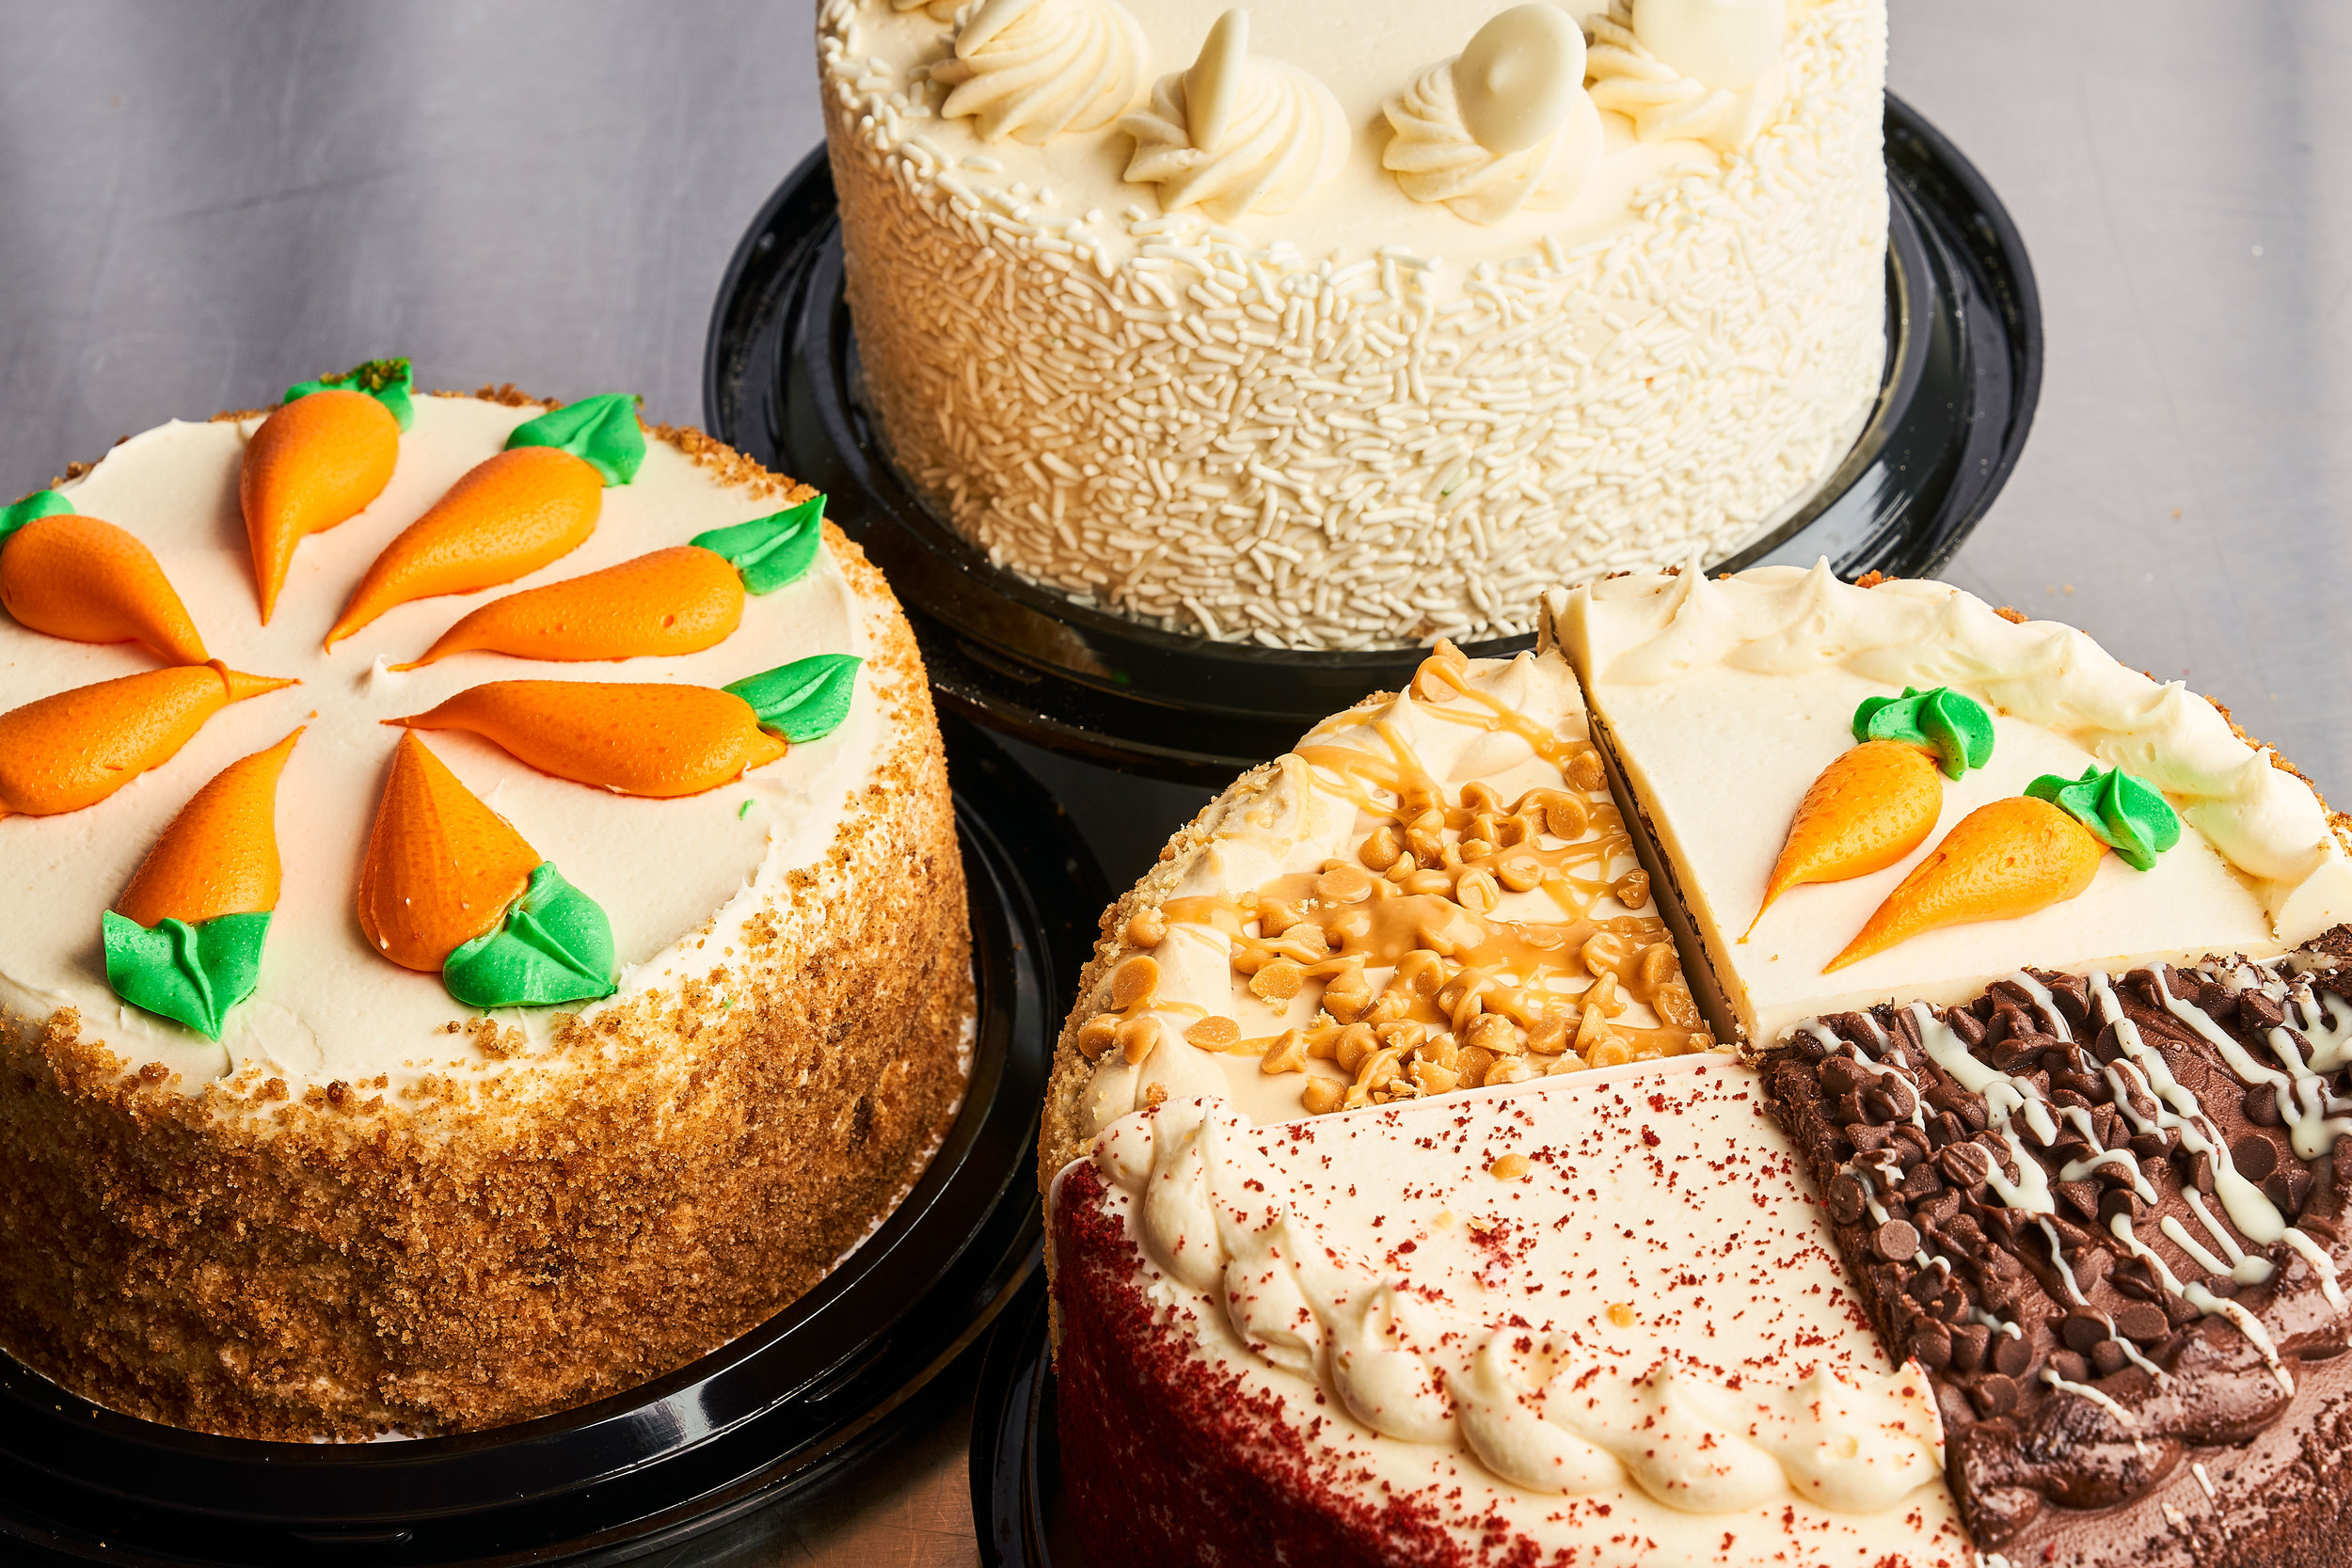 Bayside Fresh Market's bakery offers cheesecakes and variety cakes, perfect for birthday parties and holidays.